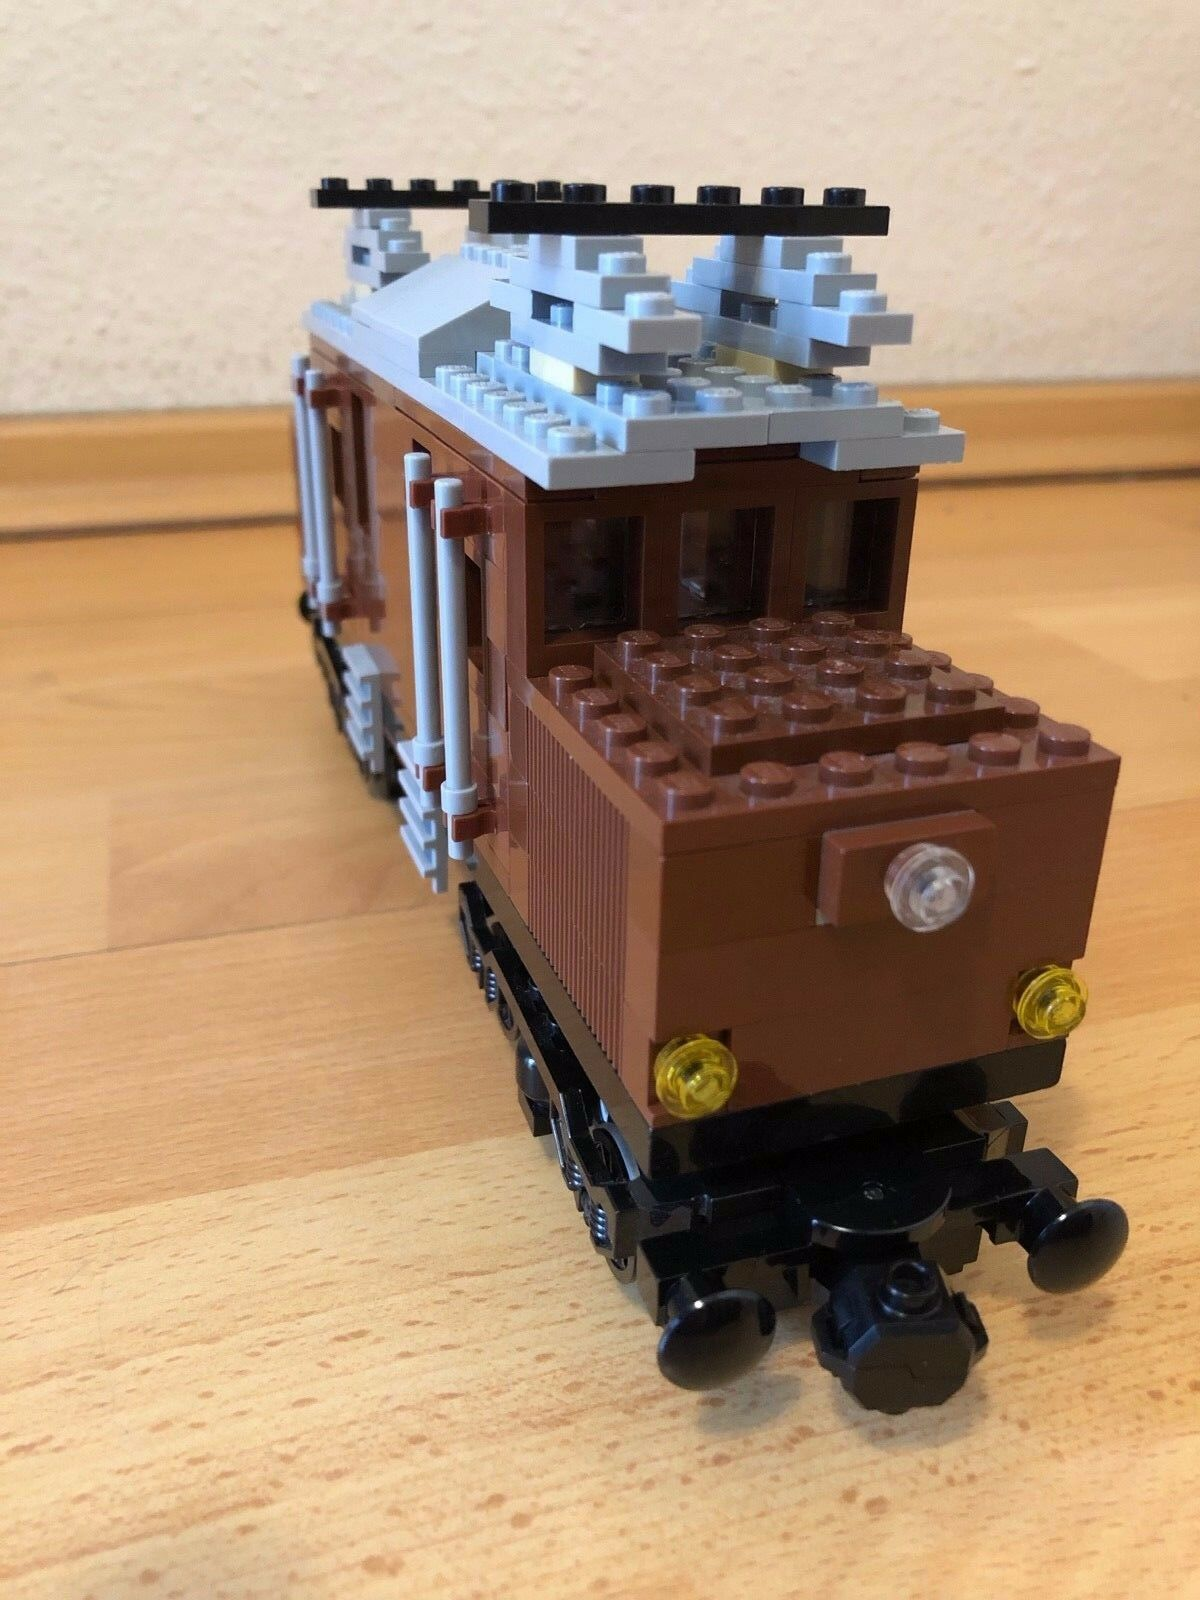 7777 LEGO idea libro train ferrovia B versione  coccodrillo for energiaosso up 12v  vendita online